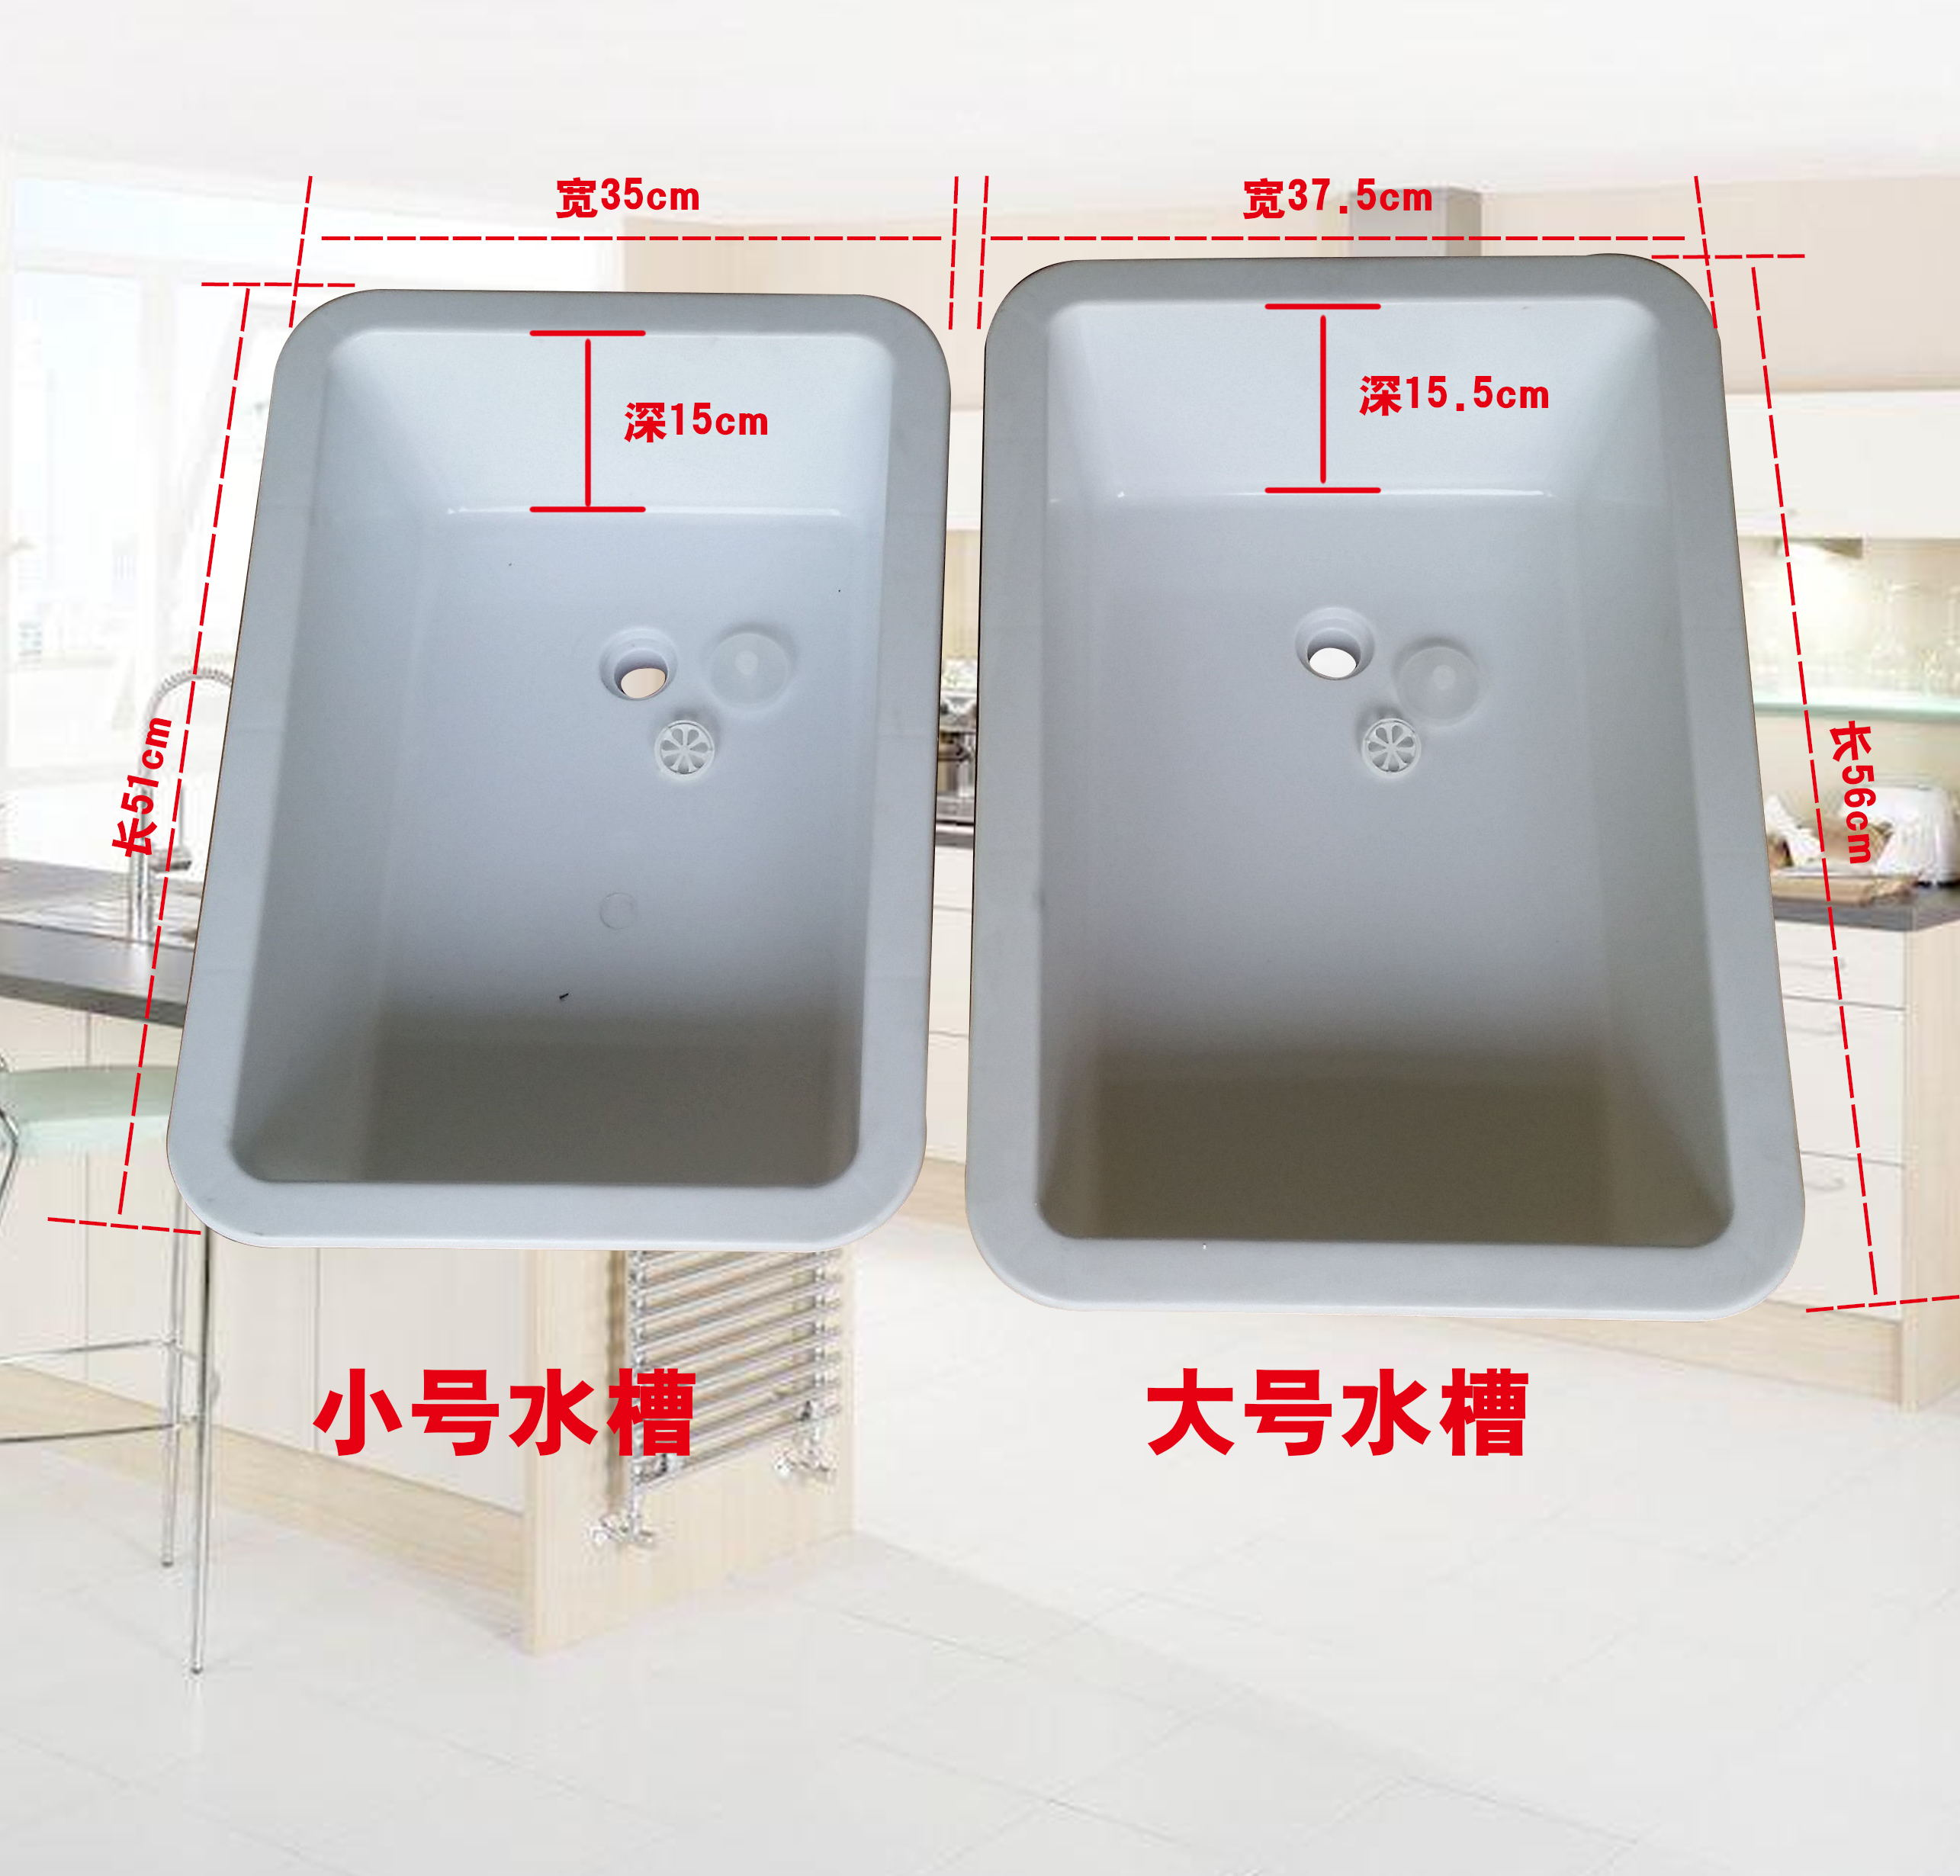 Kitchen Plastic Simple Sink Pool With Temporary Bracket Outdoor Balcony Wash Basin Water Bucket